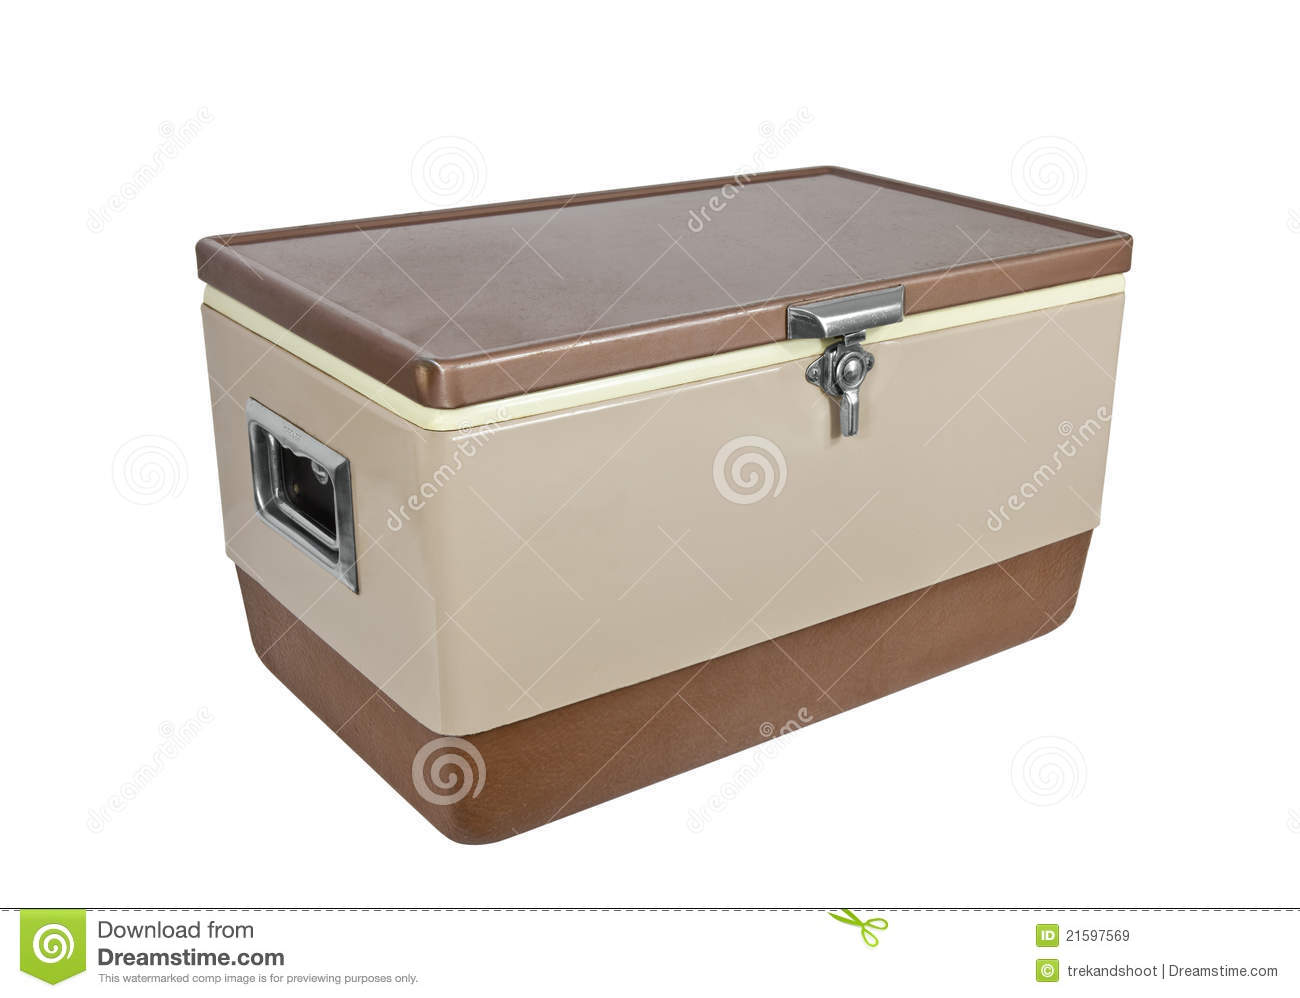 Clipart 25771 besides Pirate Skull Chest p 3335 also Diy Crafts Using Recycled Materials furthermore Chest With Lock Hope Chest Wooden Trunk as well 3d Paper Diamonds. on treasure chest toy box